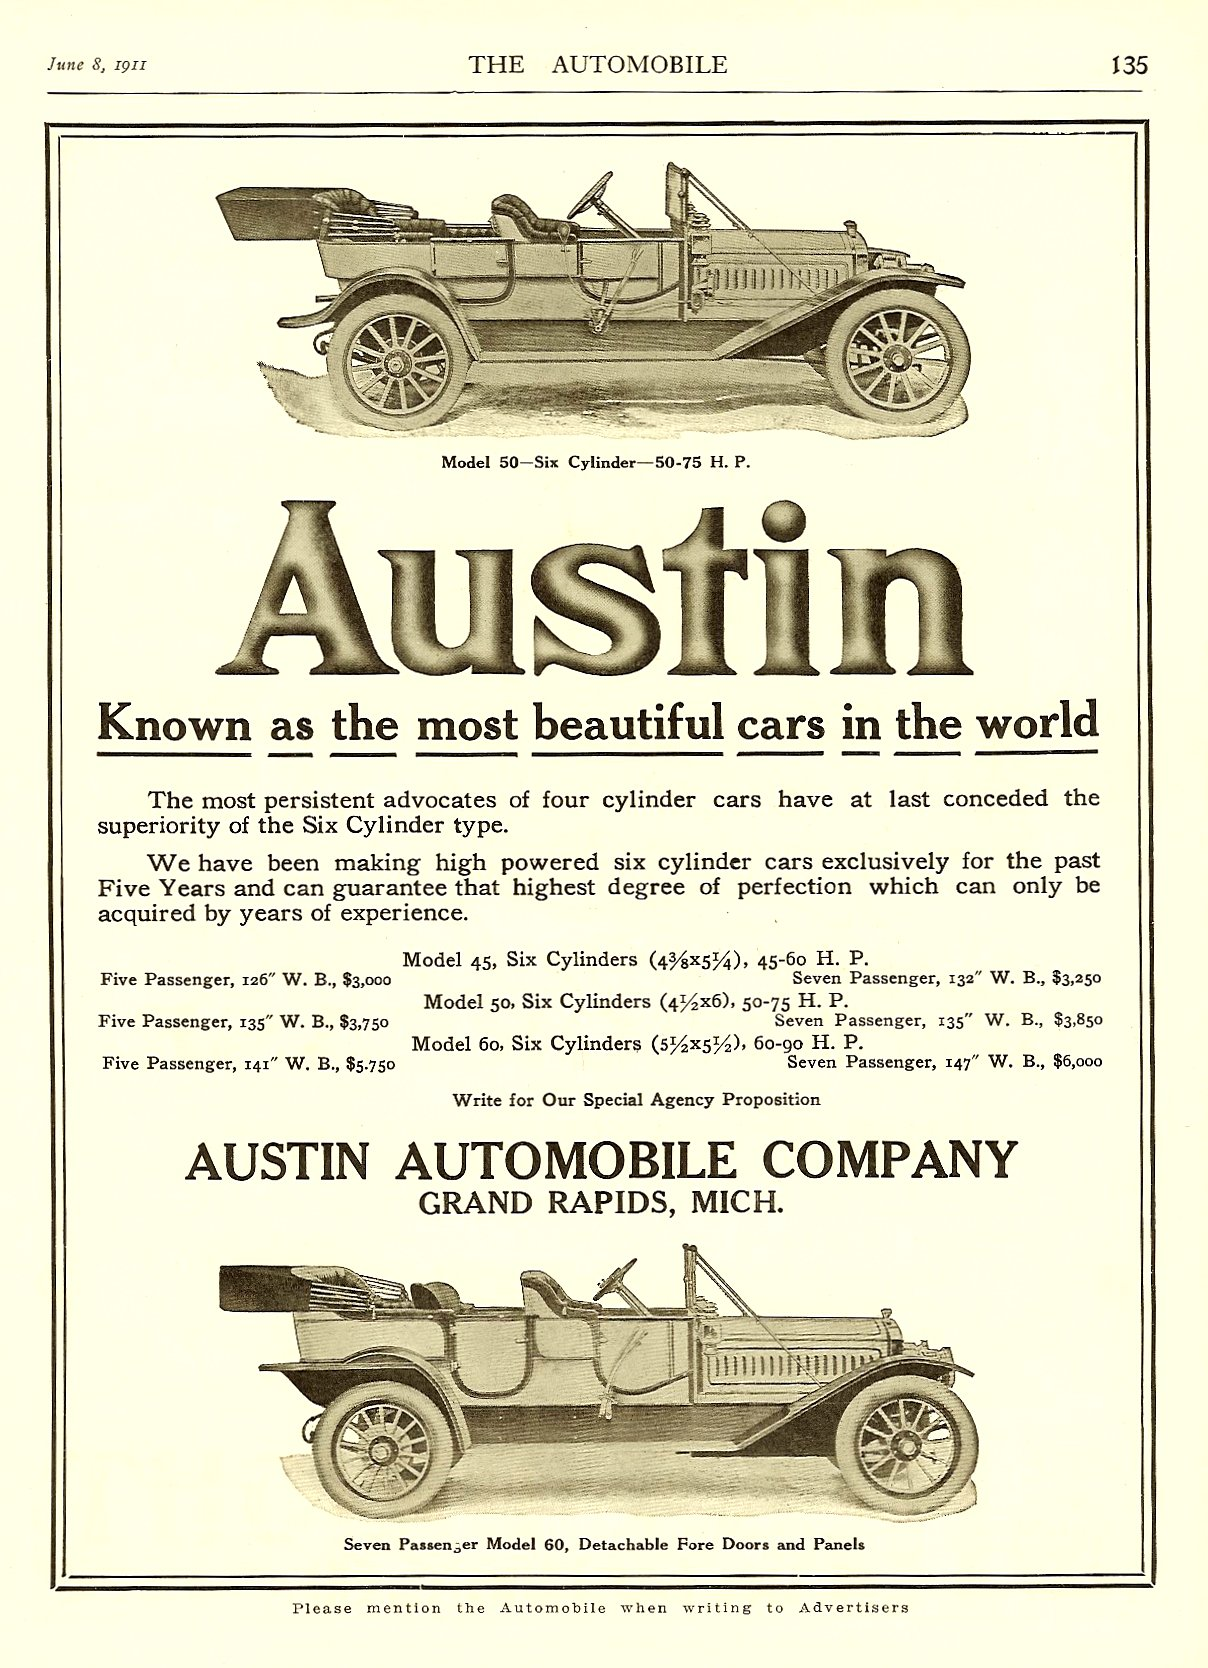 """1911 6 8 THE AUTOMOBILE 1911 Austin """"Known as the most beautiful cars in the world"""" June 8, 1911 8.25″x12″ page 135"""